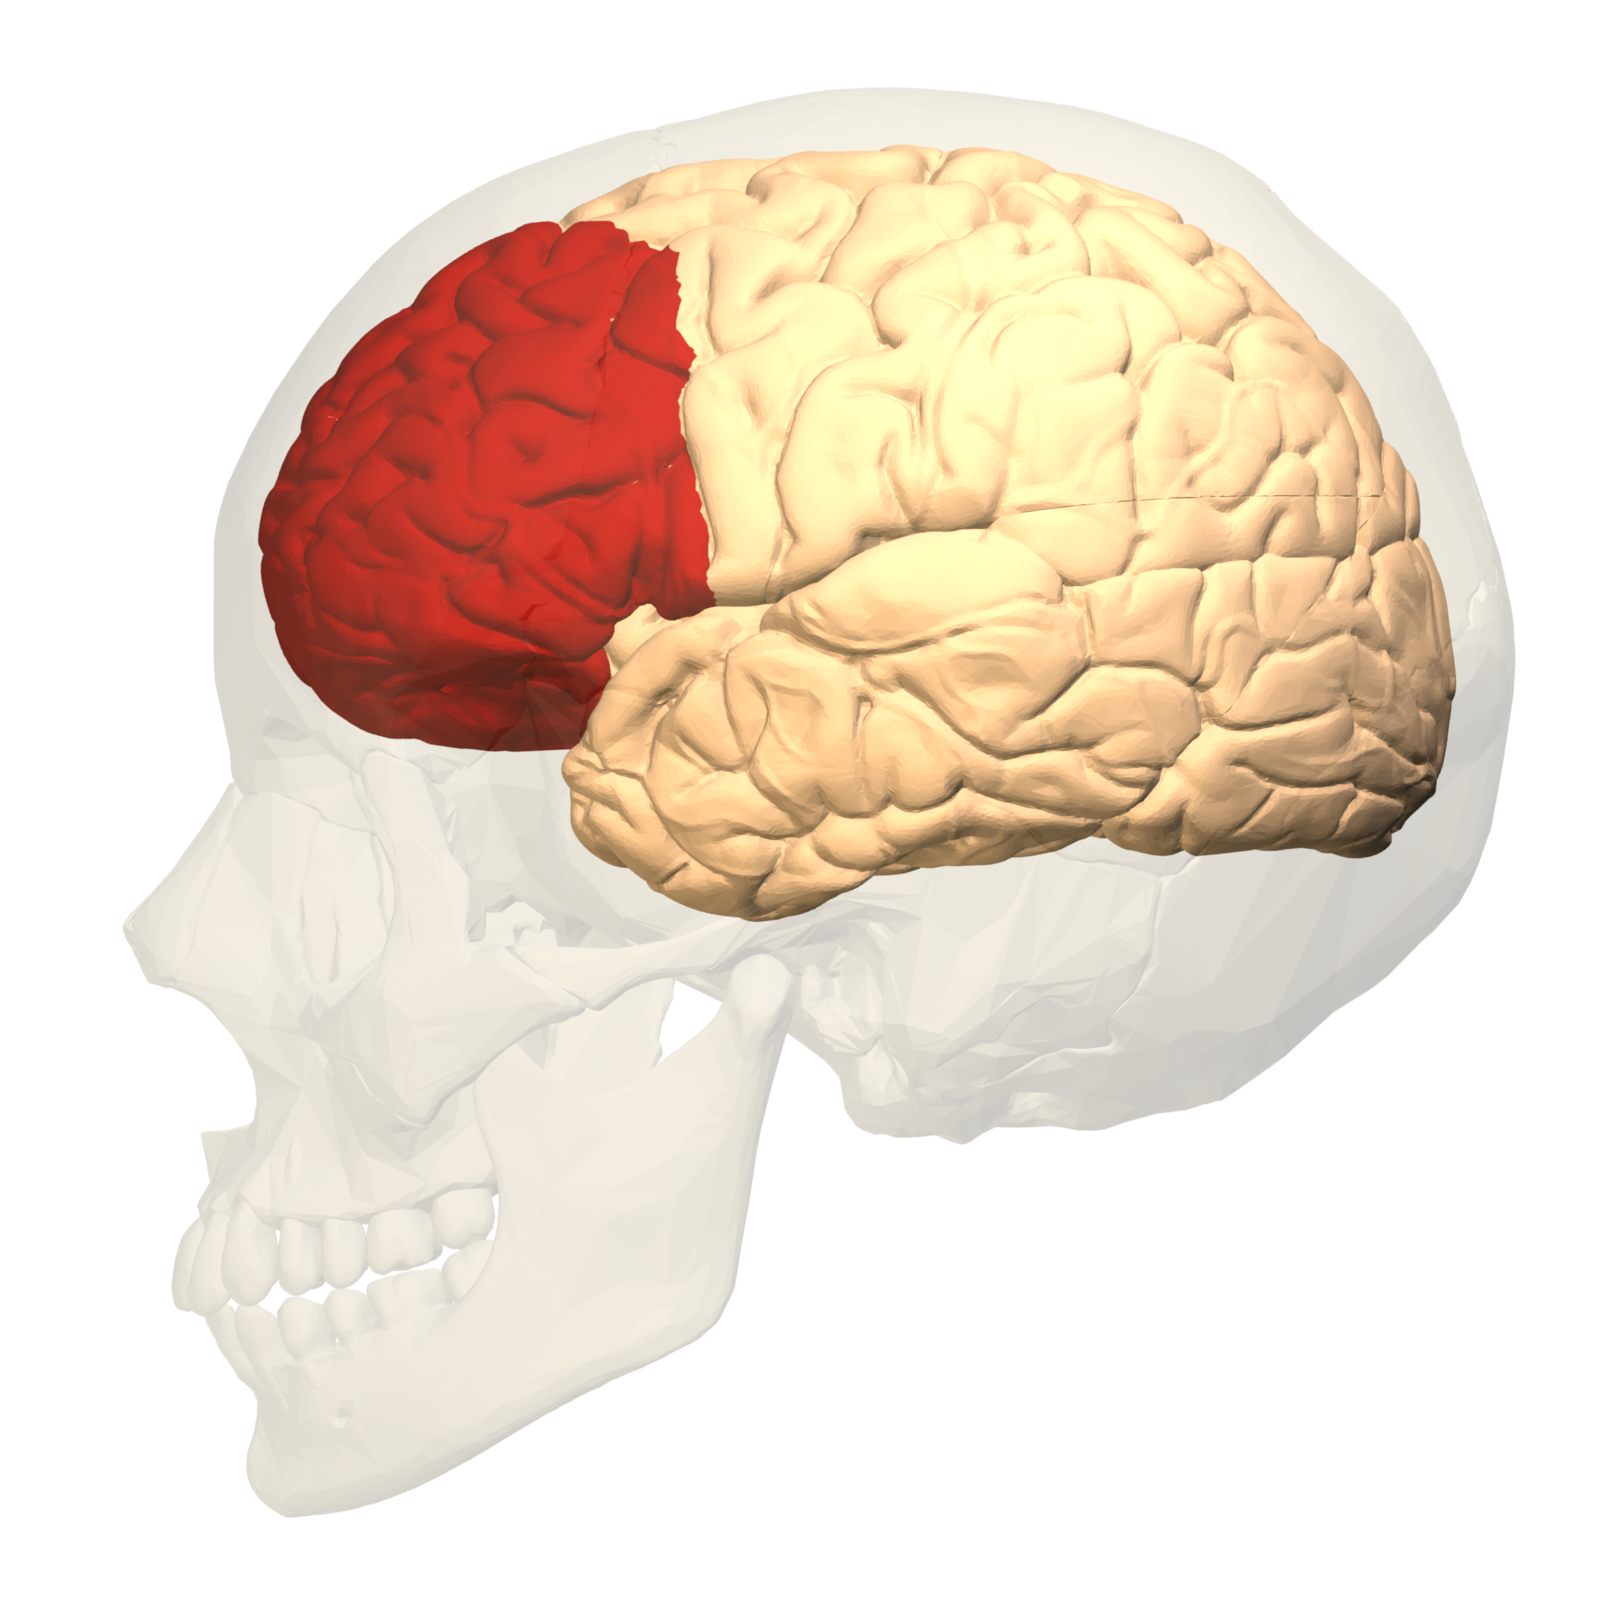 What does the occipital lobe do